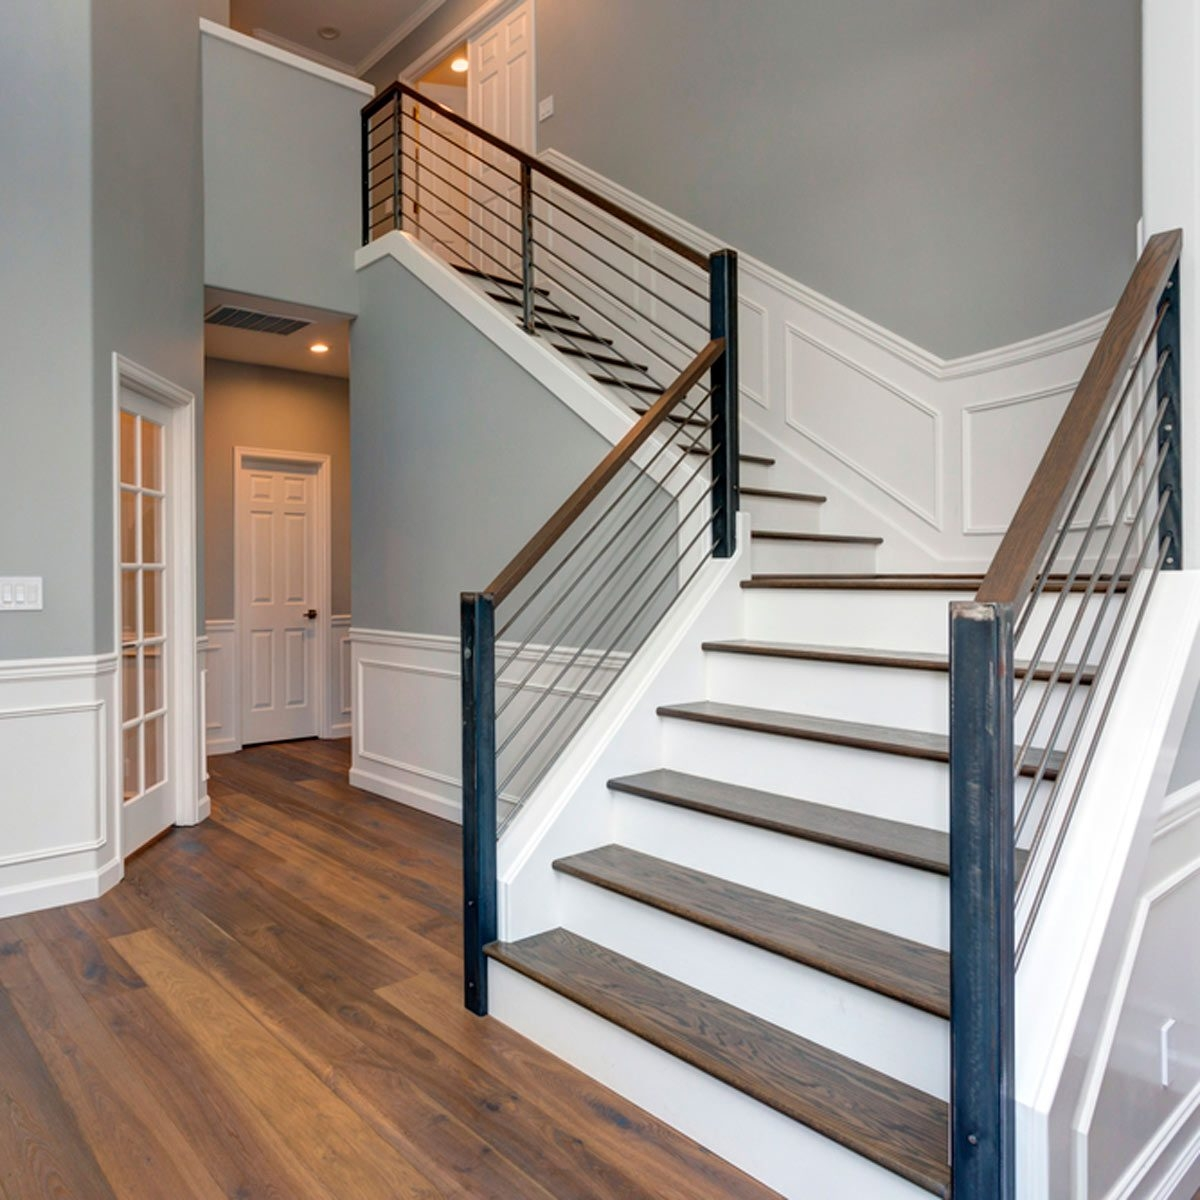 10 Ways To Freshen Up Outdated Banisters Family Handyman | Glass And Chrome Staircase | Contemporary | White Post | Single Spine | Lights | Stainless Steel